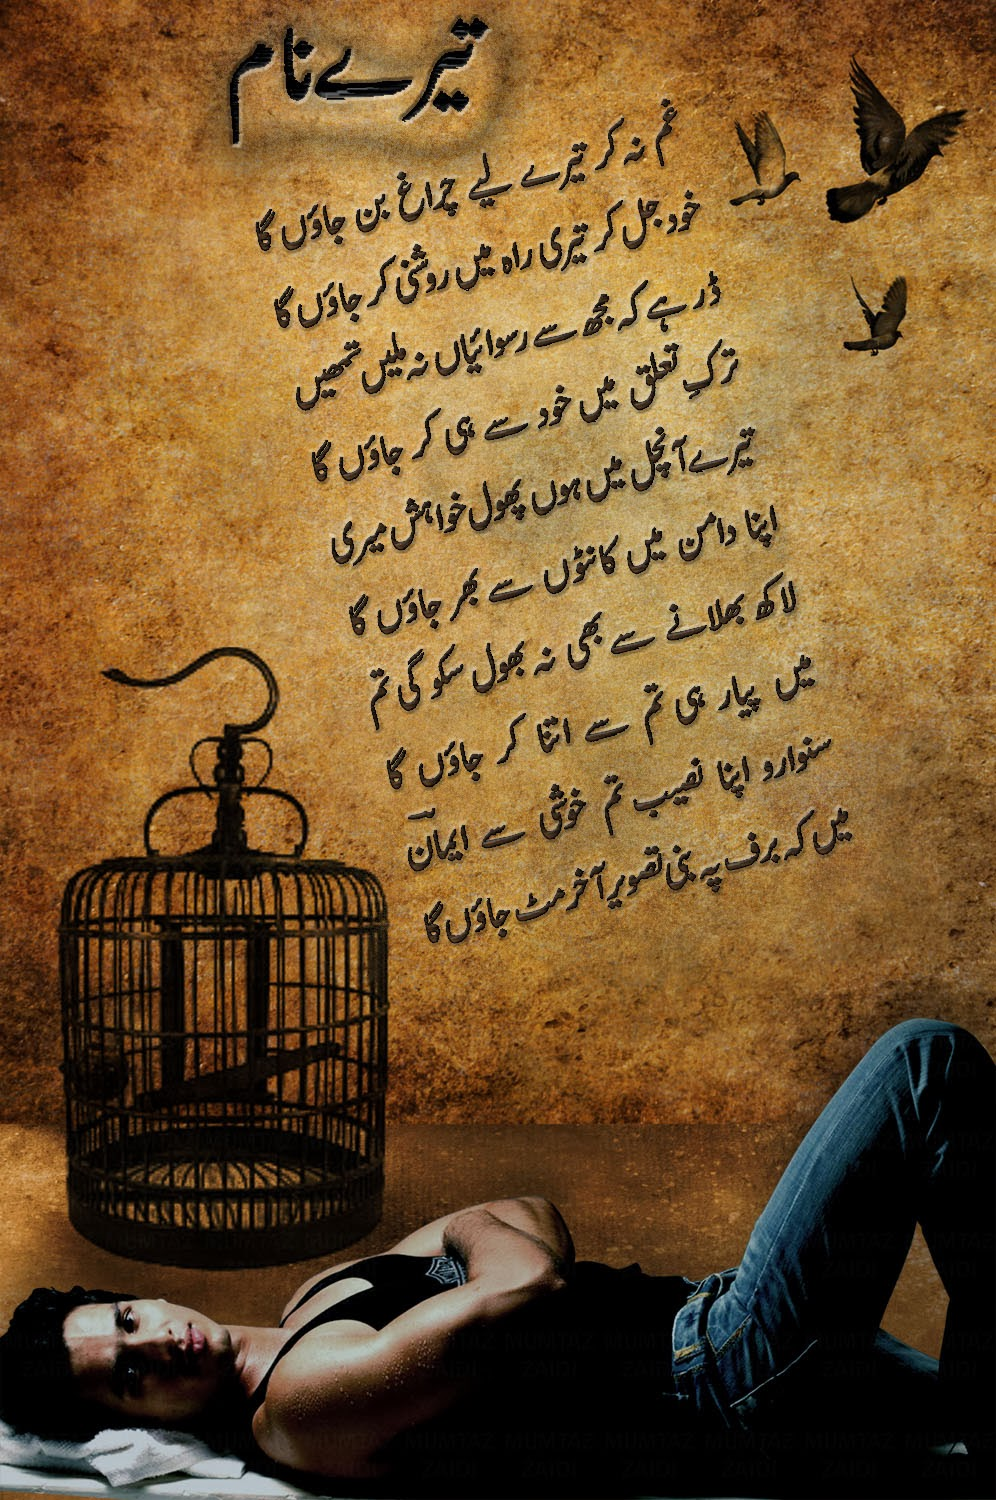 Zindagi ye safar mein hai lyrics